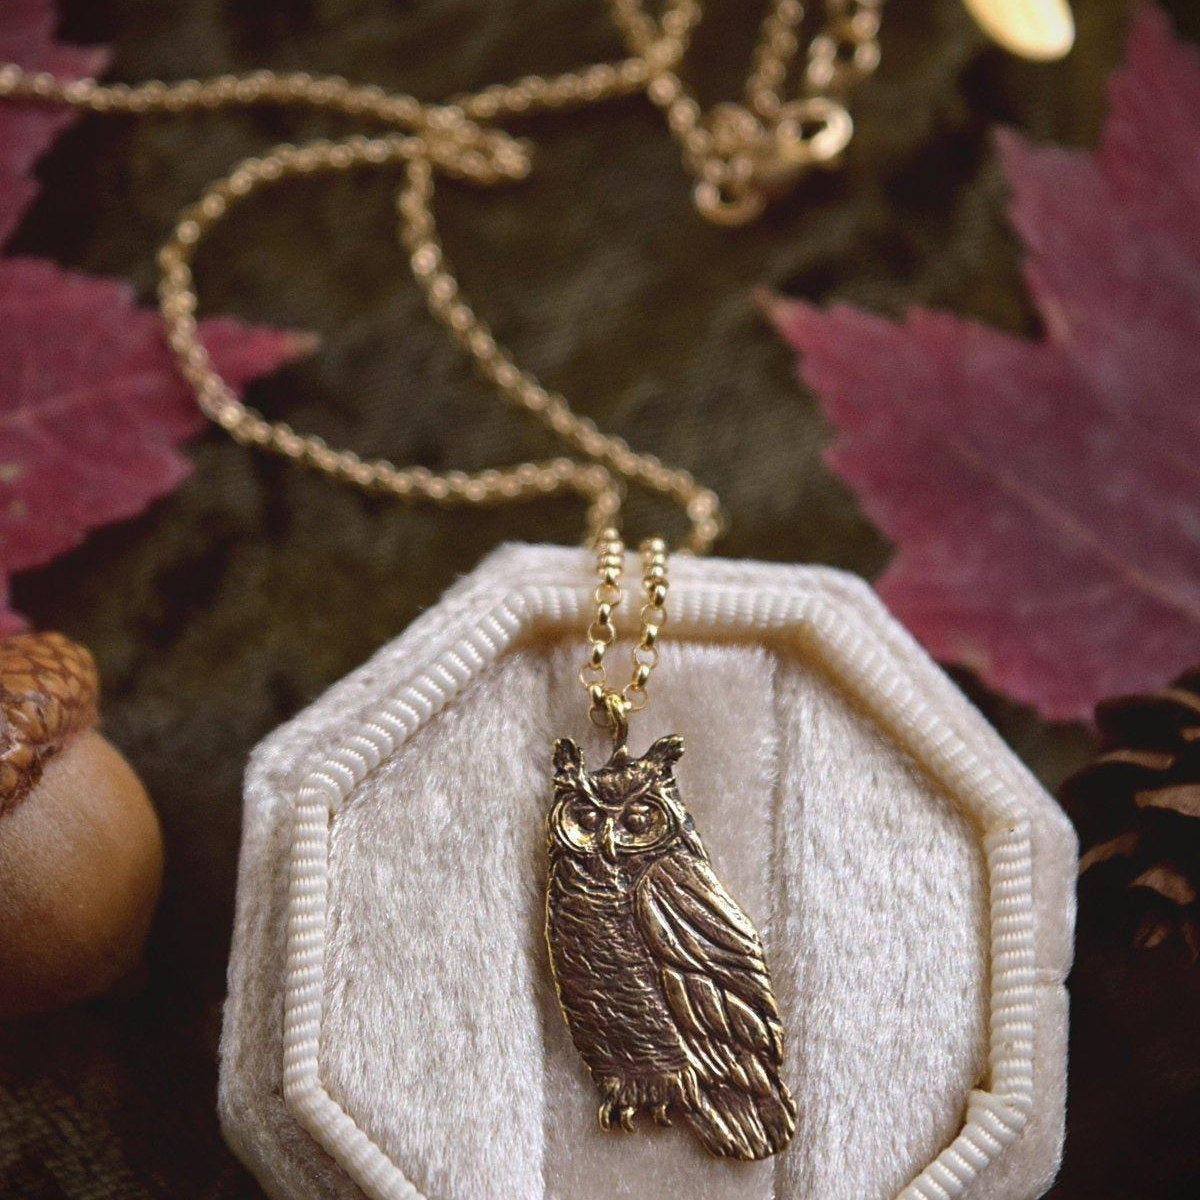 Owl Necklace - Gold Bronze Great Horned Owl Pendant - Small, Dainty Bird Necklace - Owl Lover Gift - Cottagecore, Mori Girl - Woodland Belle